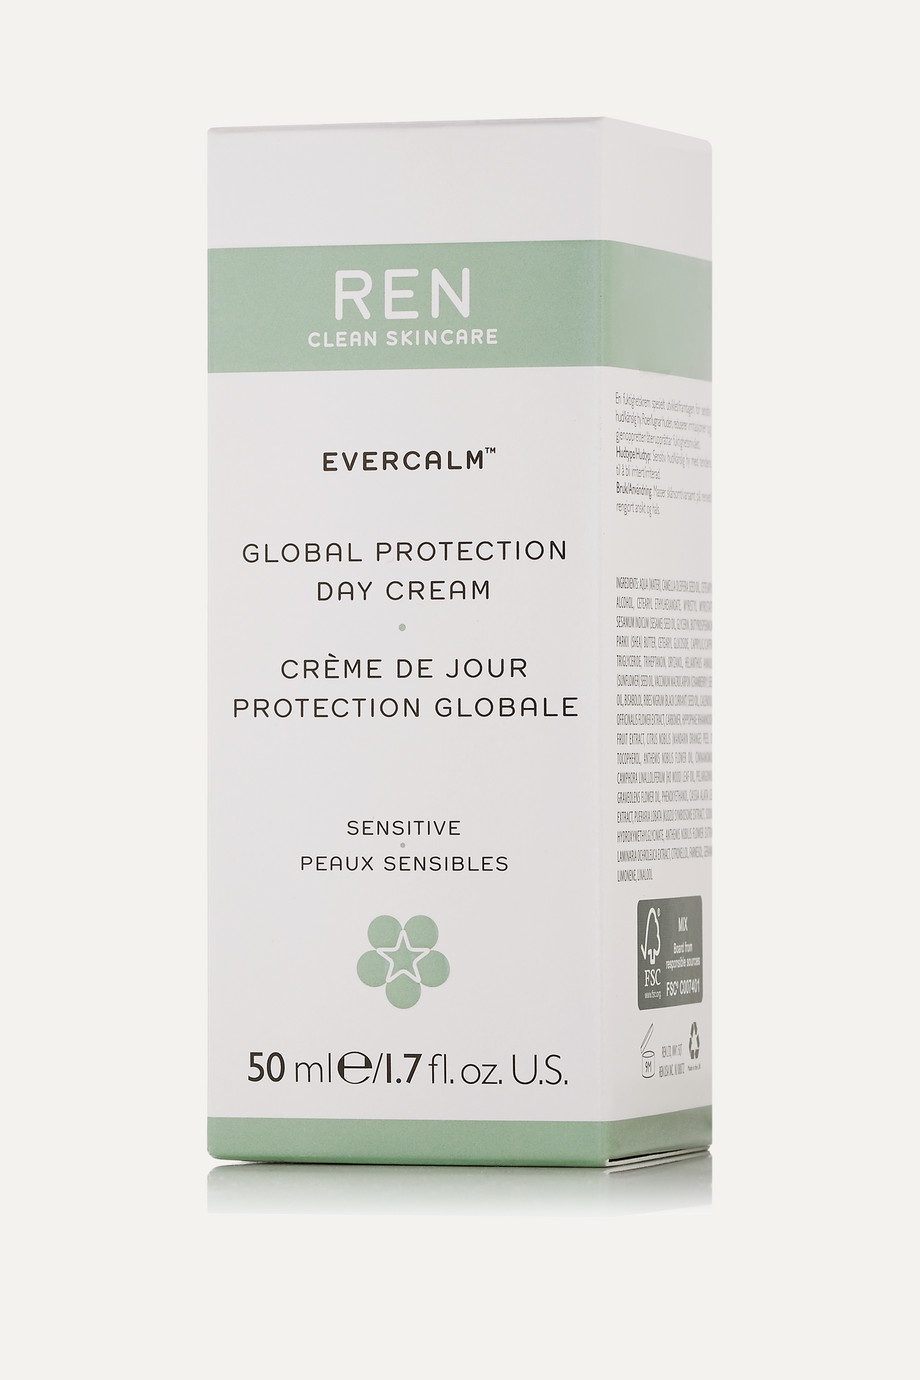 REN Clean Skincare Evercalm™ Global Protection Day Cream, 50ml